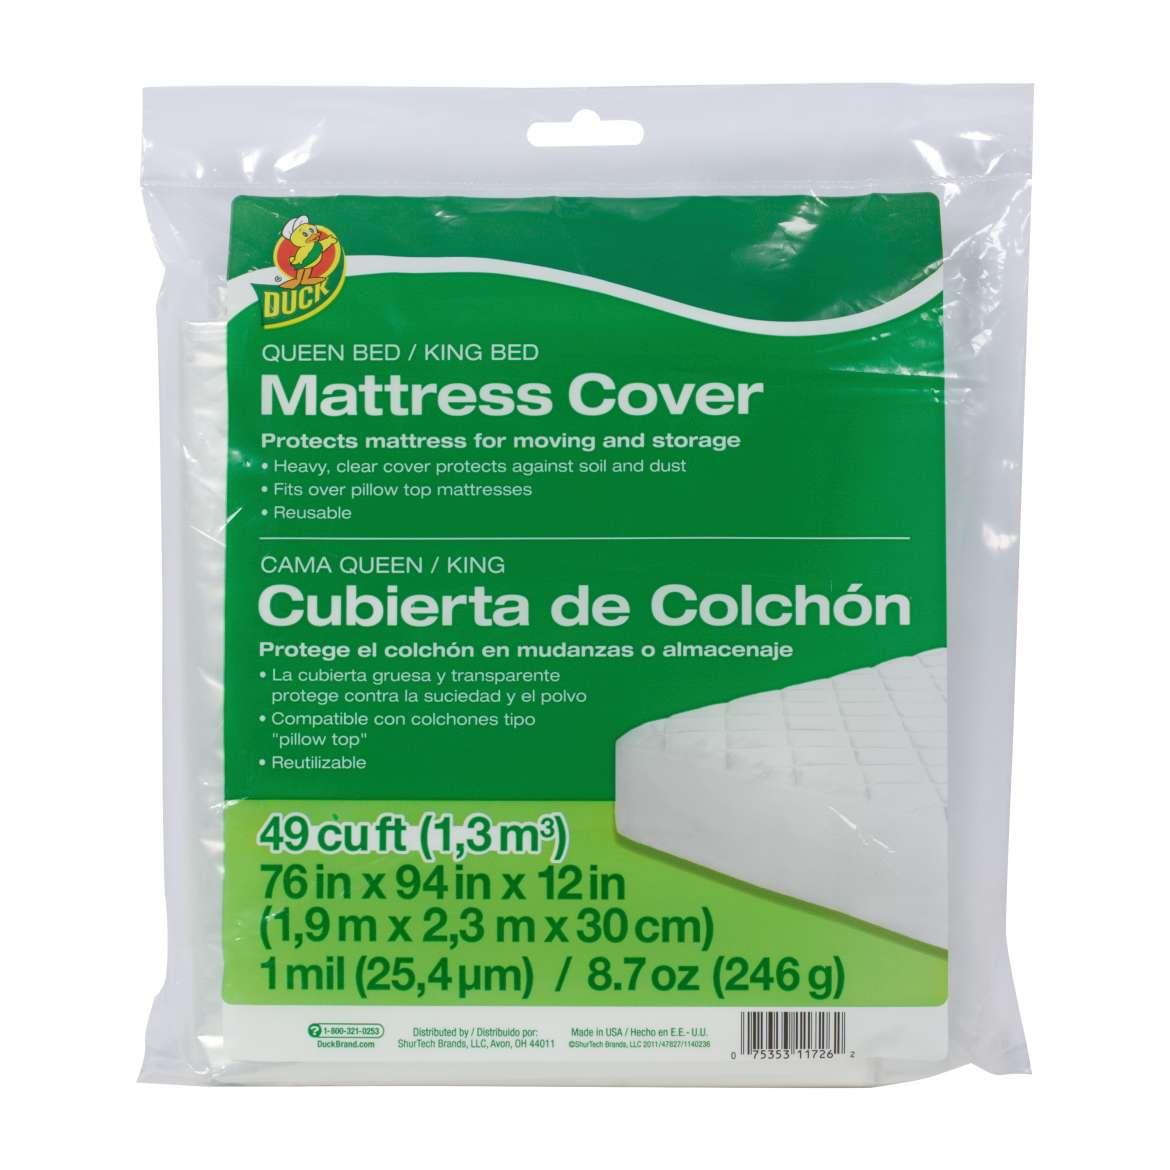 Queen King Bed Mattress Cover 76 X 94 X 12 In